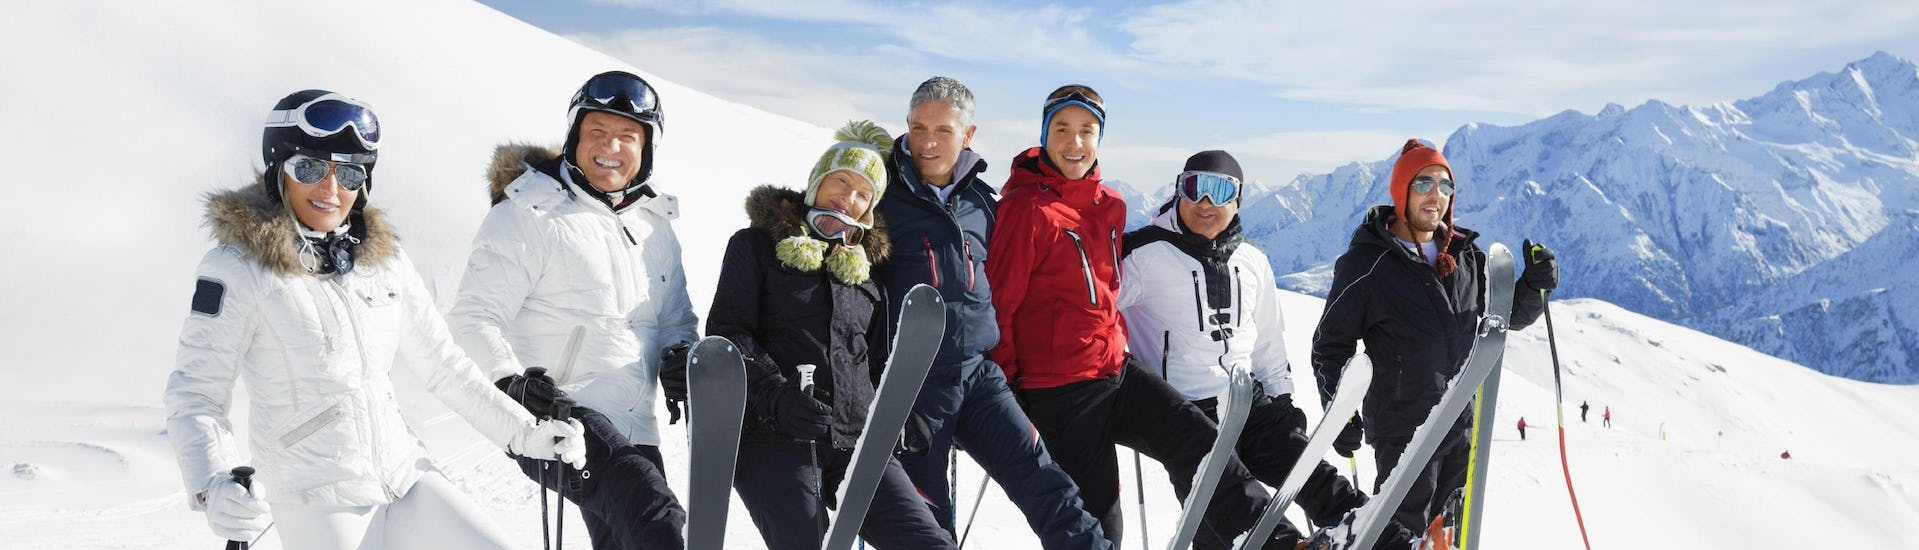 A group of skiers enjoying one of the many ski lessons for adults in the ski resort of Adelboden.